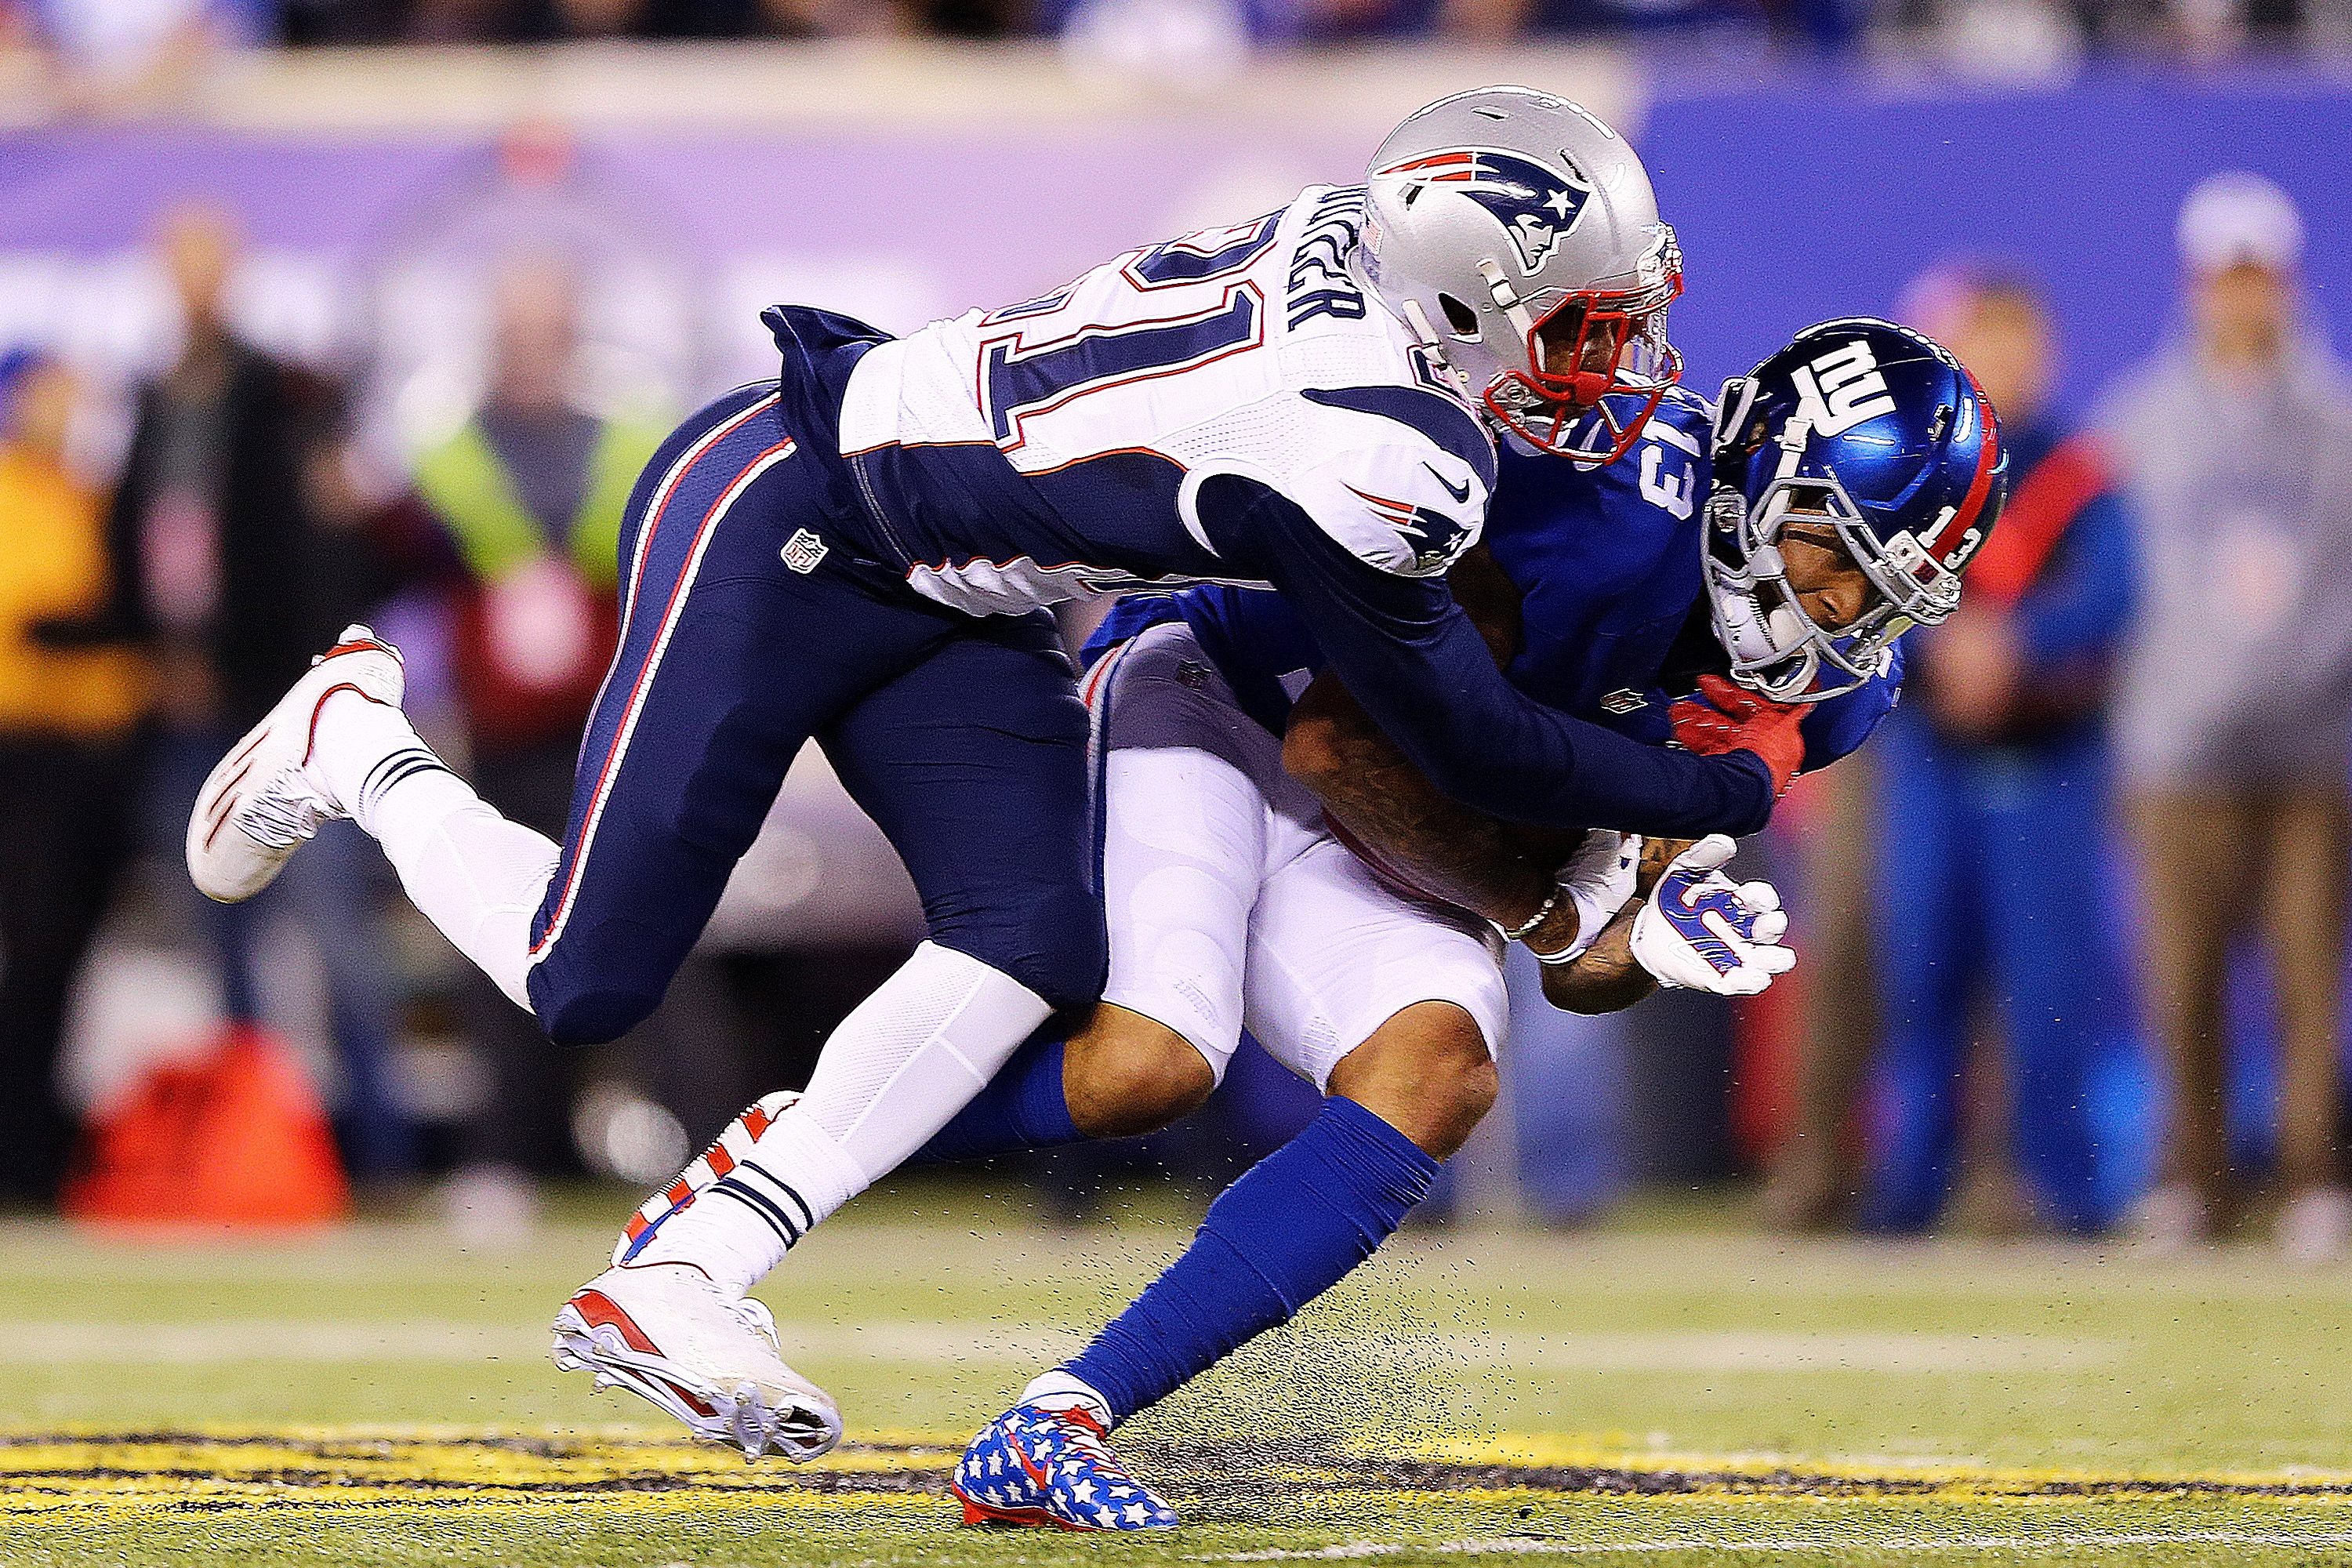 Odell Beckham #13 of the New York Giants is tackled by Malcolm Butler #21 of the New England Patriots during the third quarter at MetLife Stadium on November 15, 2015 in East Rutherford, New Jersey.